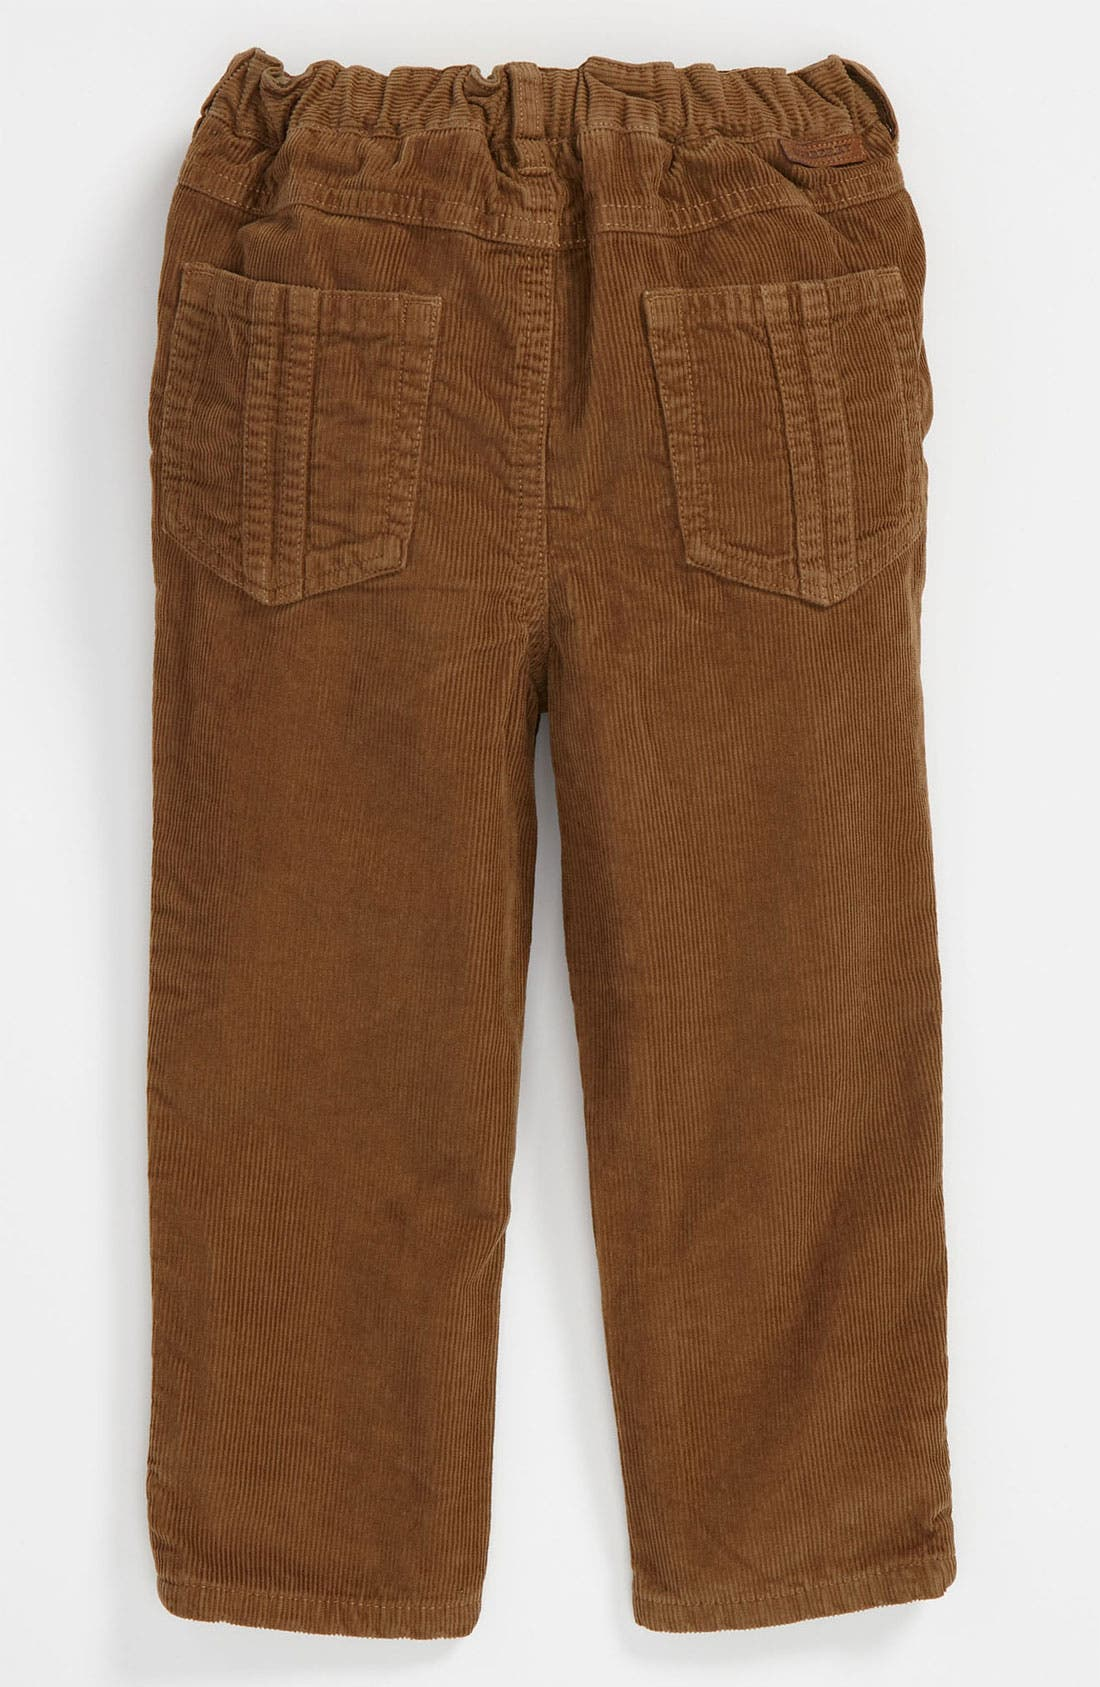 Alternate Image 1 Selected - Burberry Corduroy Pants (Toddler)